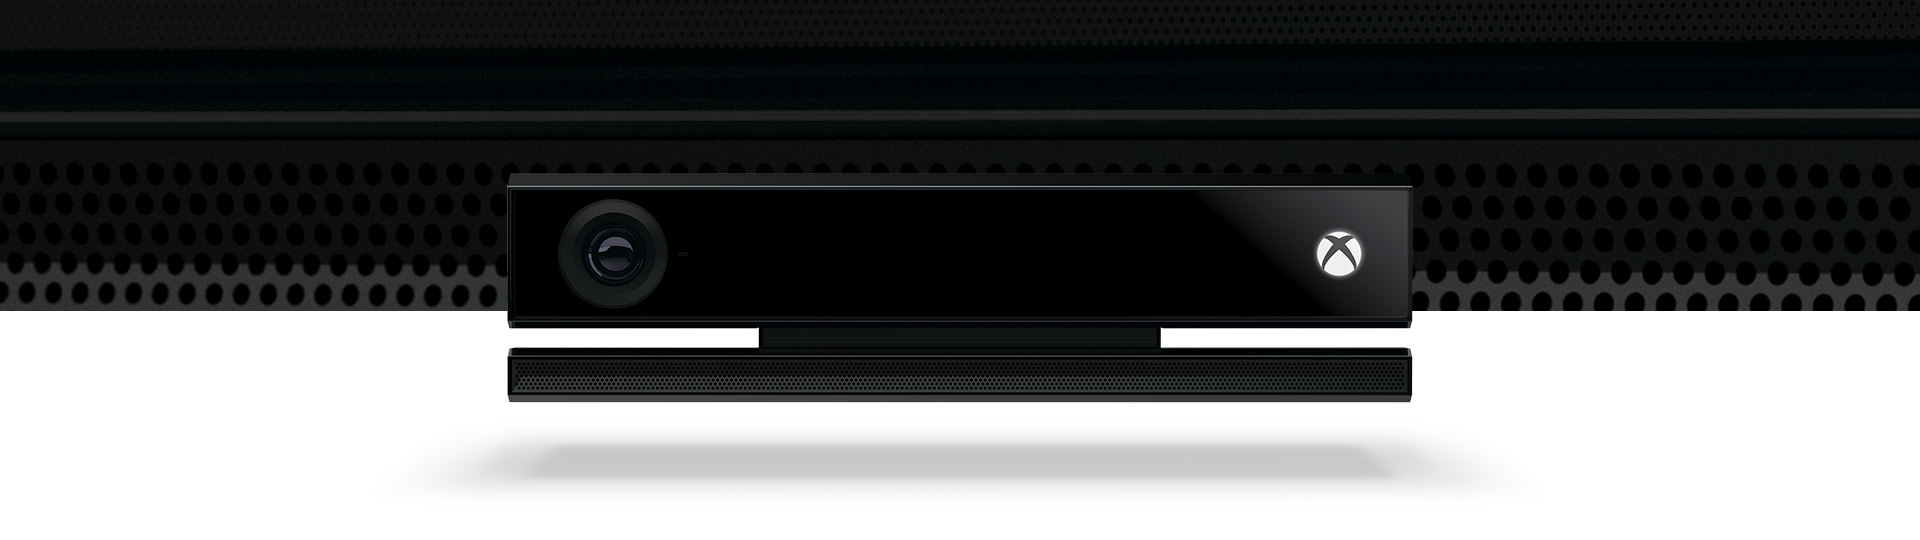 Xbox Kinect 感應器